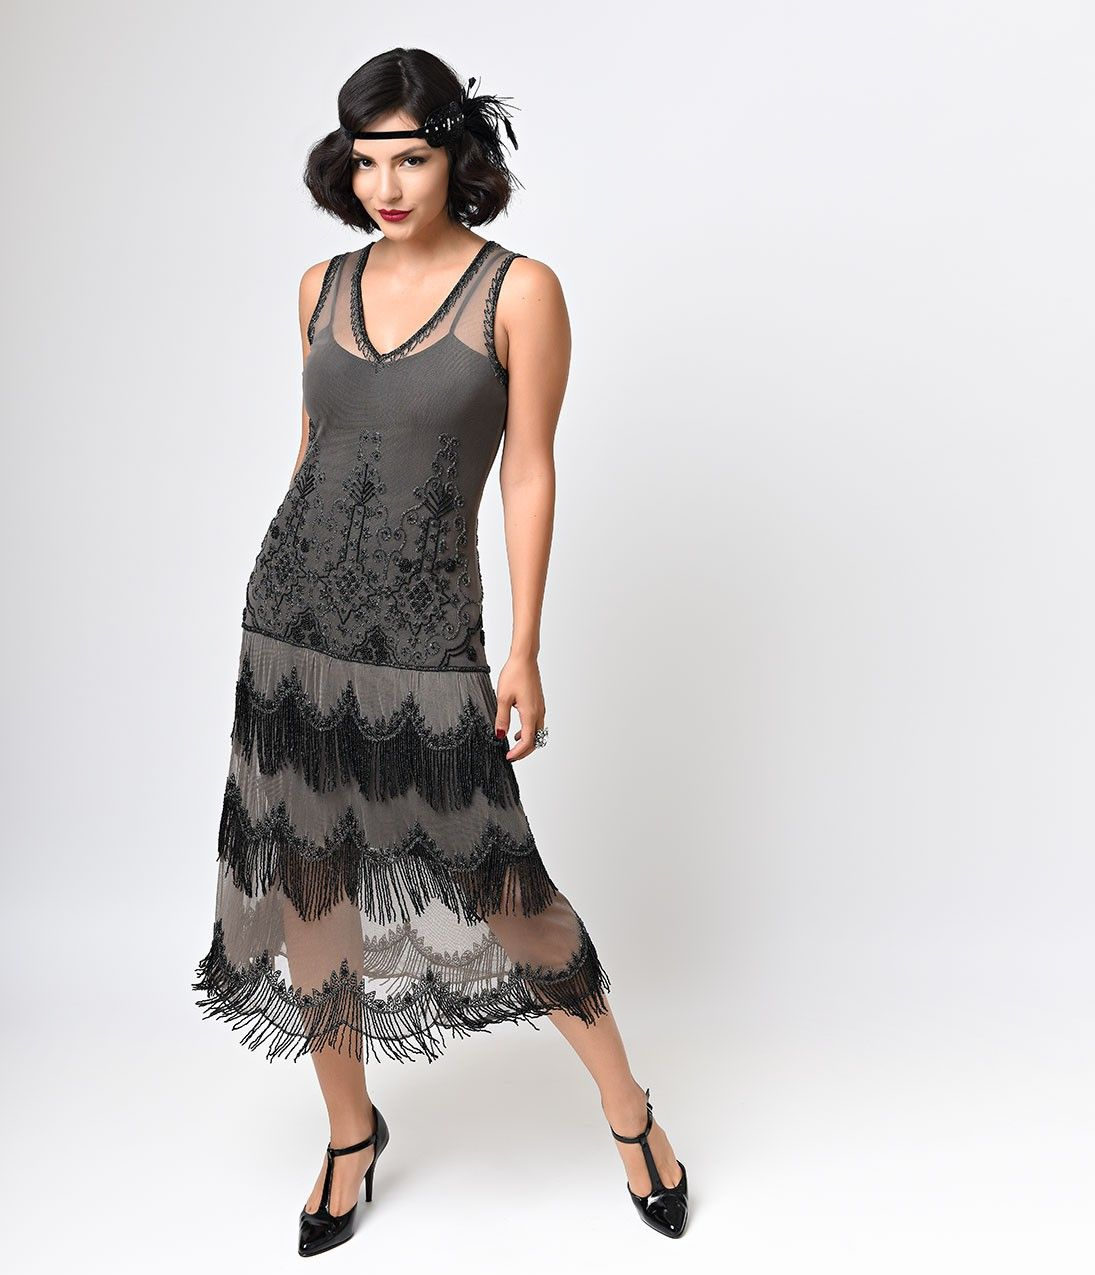 1920s Inspired Girls Dresses